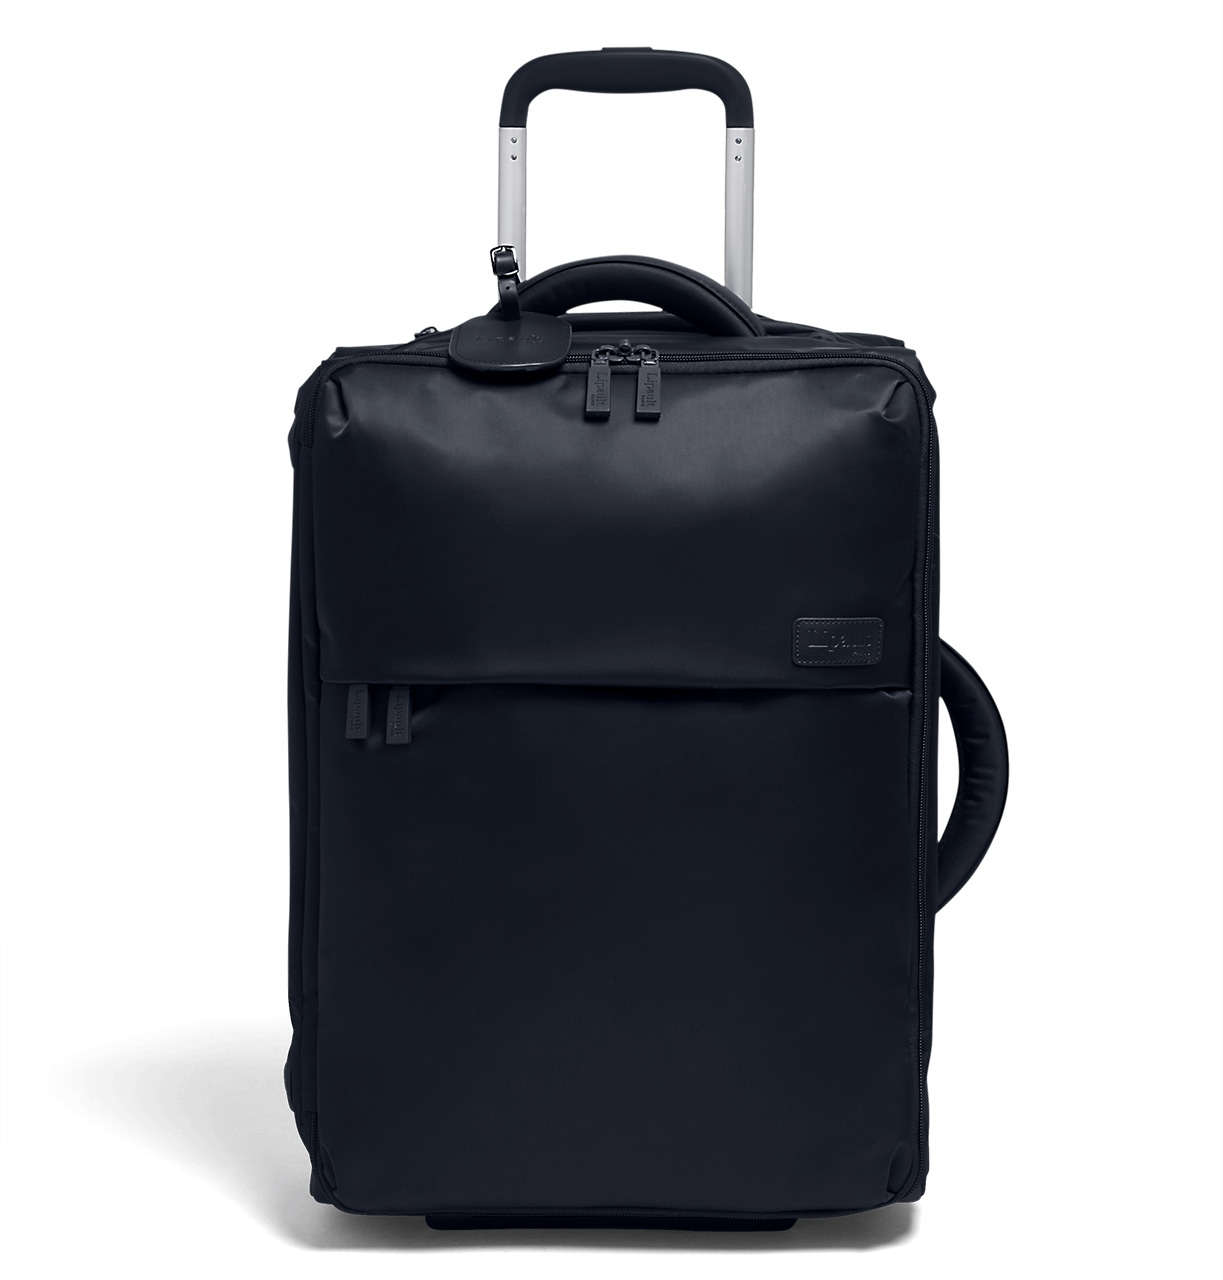 LIPAULT 0% PLIABLE Bagage cabine